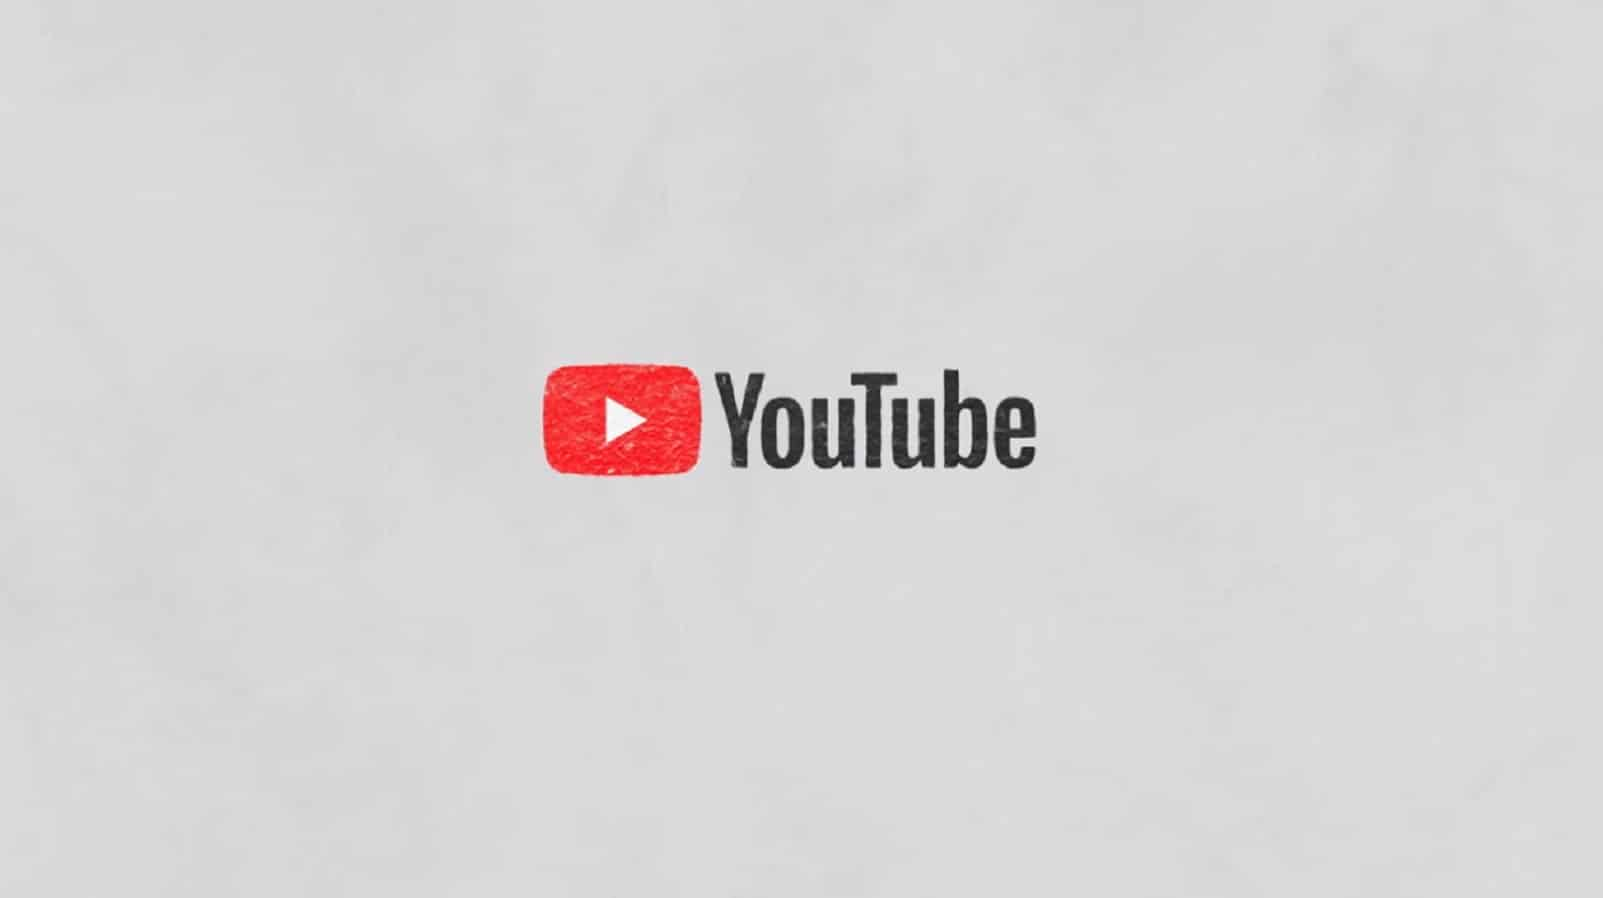 youtube logo on grey background